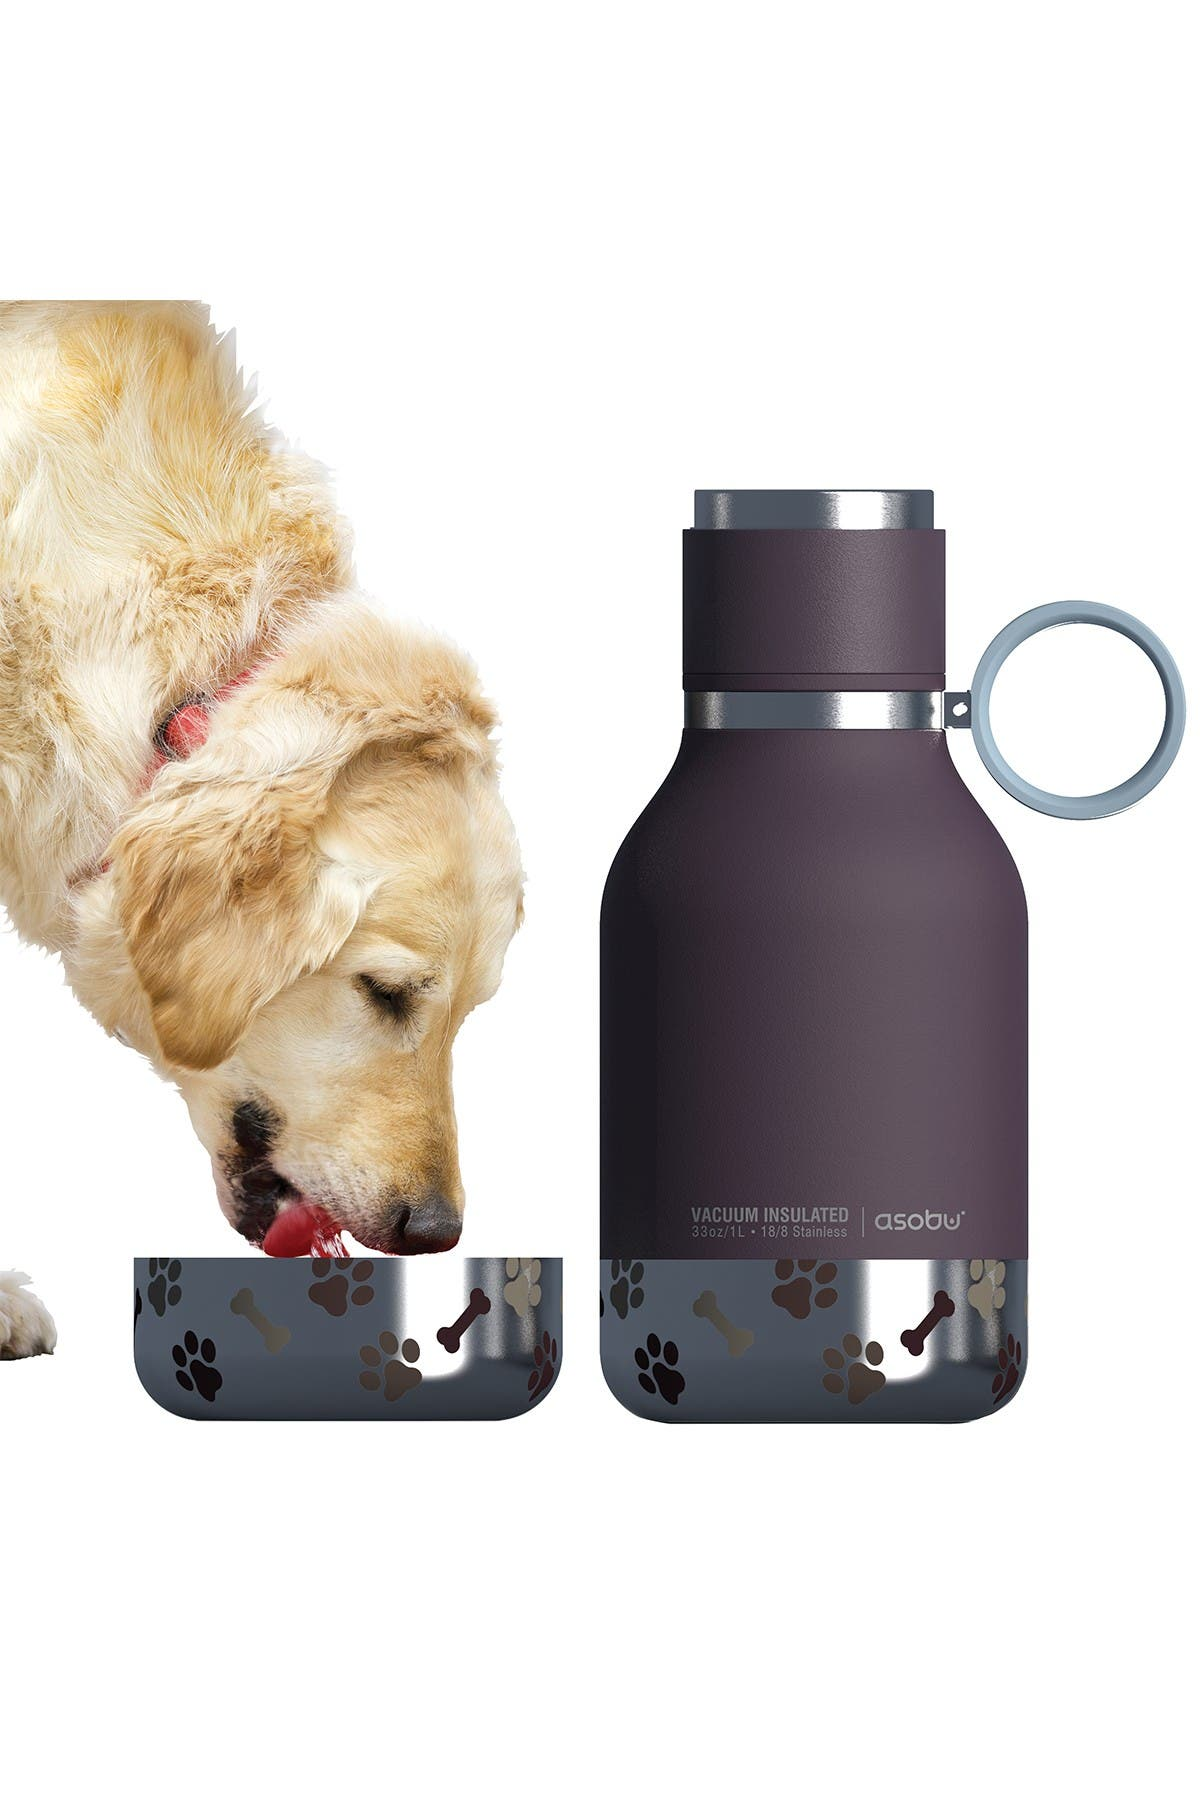 Image of ASOBU Insulated Bottle with Detachable Bowl - Burgundy